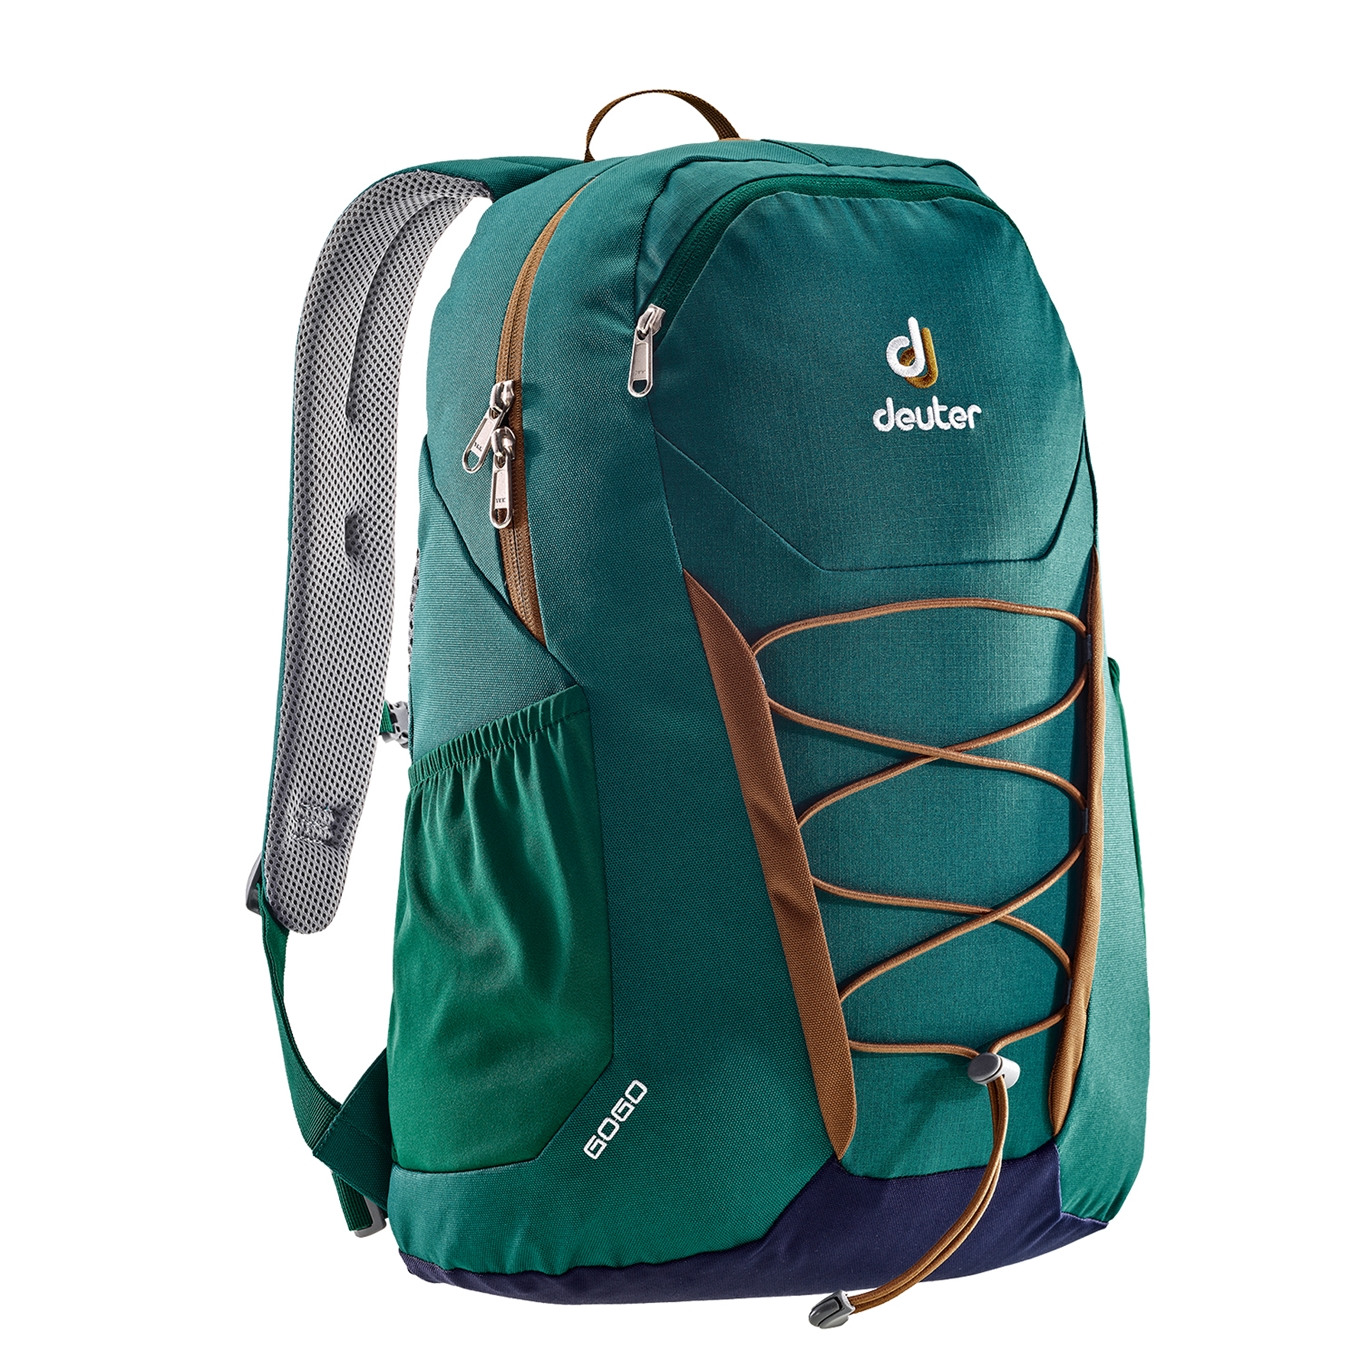 Deuter Gogo Backpack alpinegreen/navy